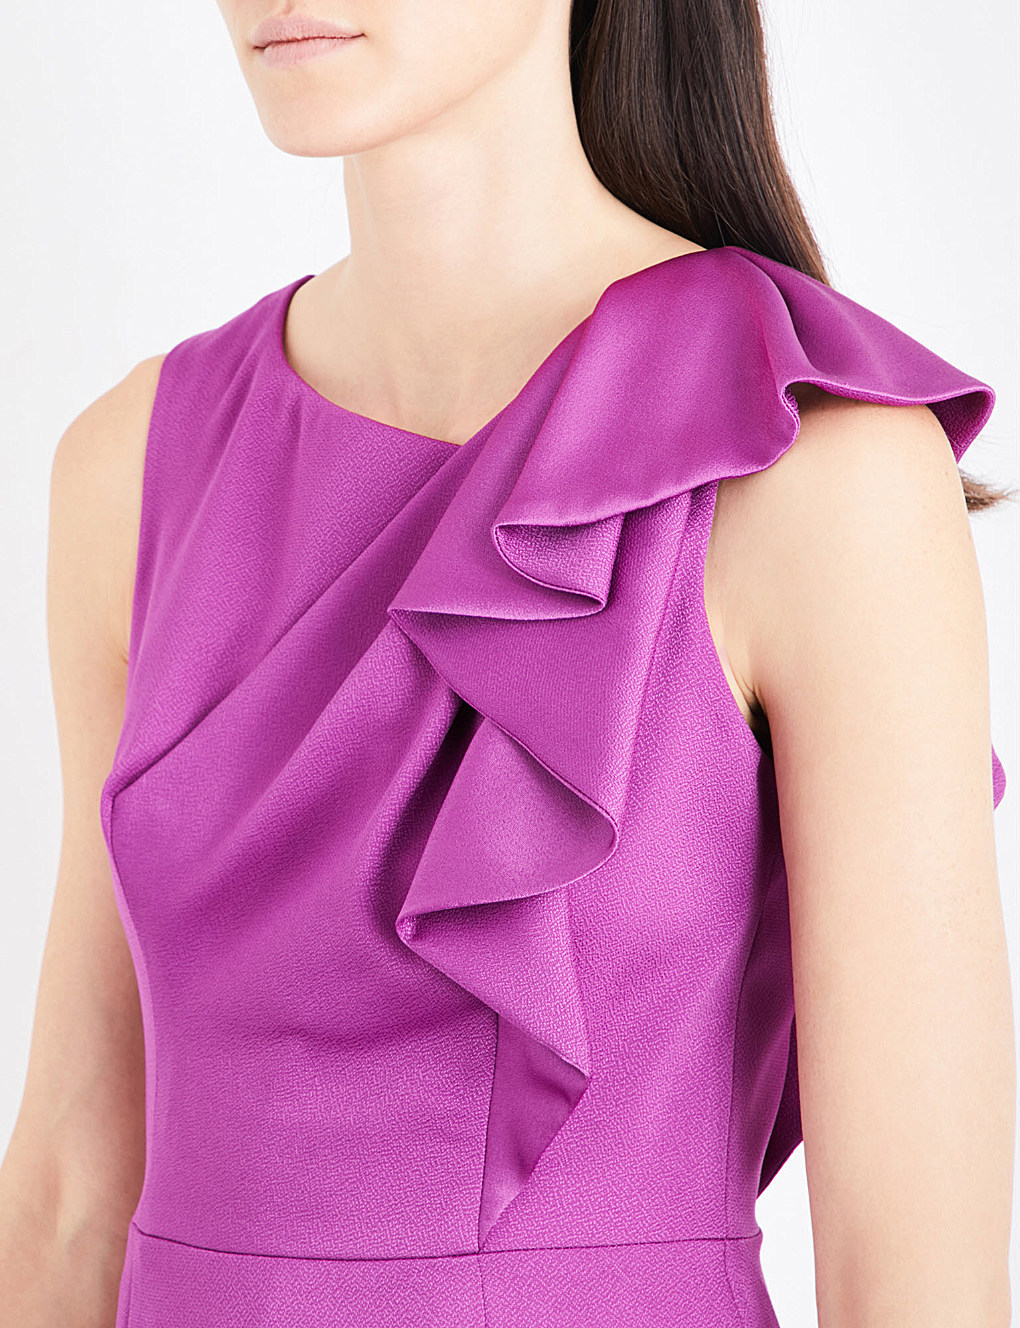 【海外限定】Karen Millen ドレス☆Ruffled charmeause dress